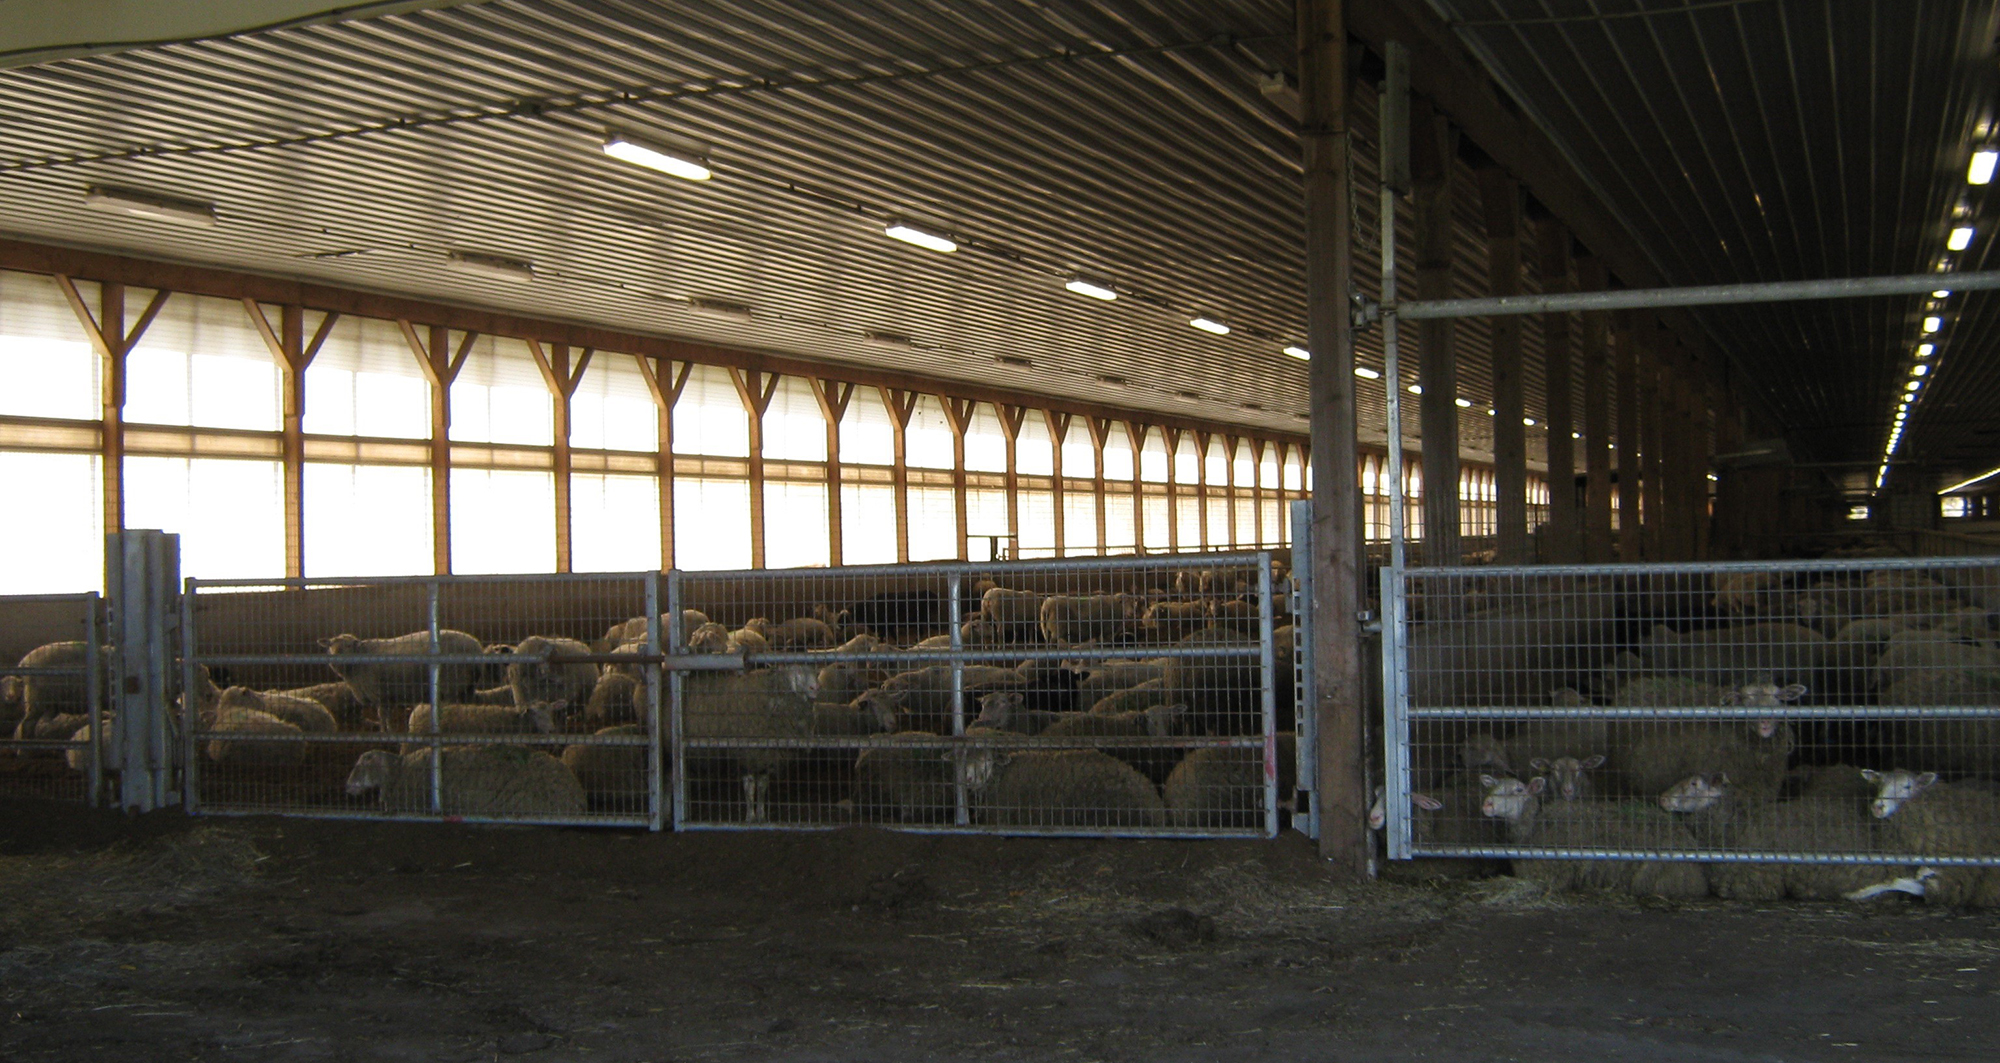 Scaling Up Means Closing Down Farmstead Creamery's Pastoral